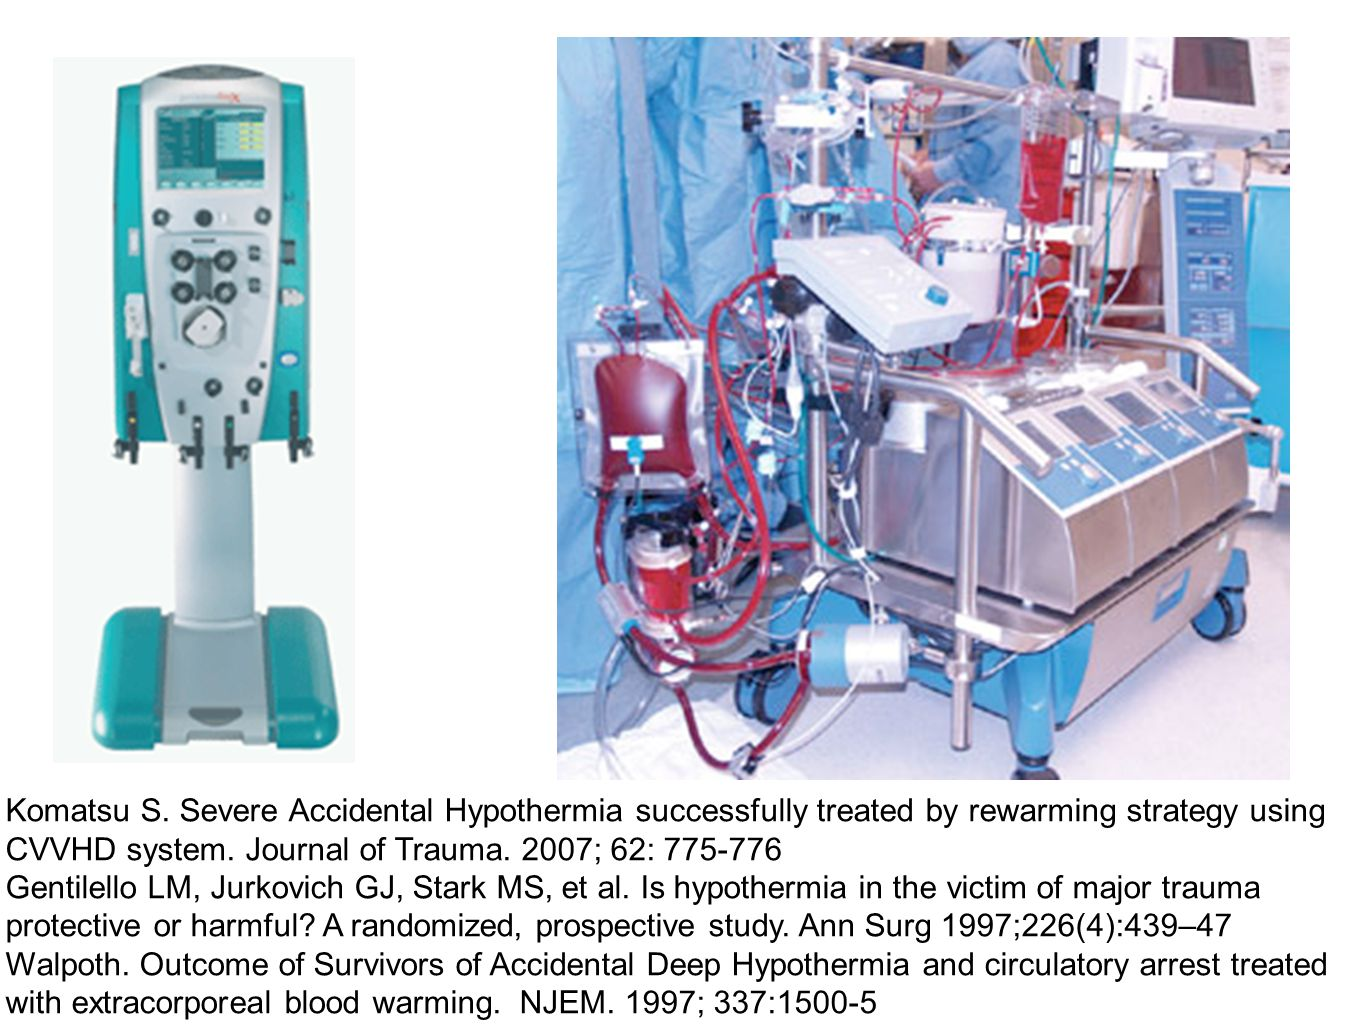 Komatsu S. Severe Accidental Hypothermia successfully treated by rewarming strategy using CVVHD system. Journal of Trauma. 2007; 62: 775-776 Gentilell